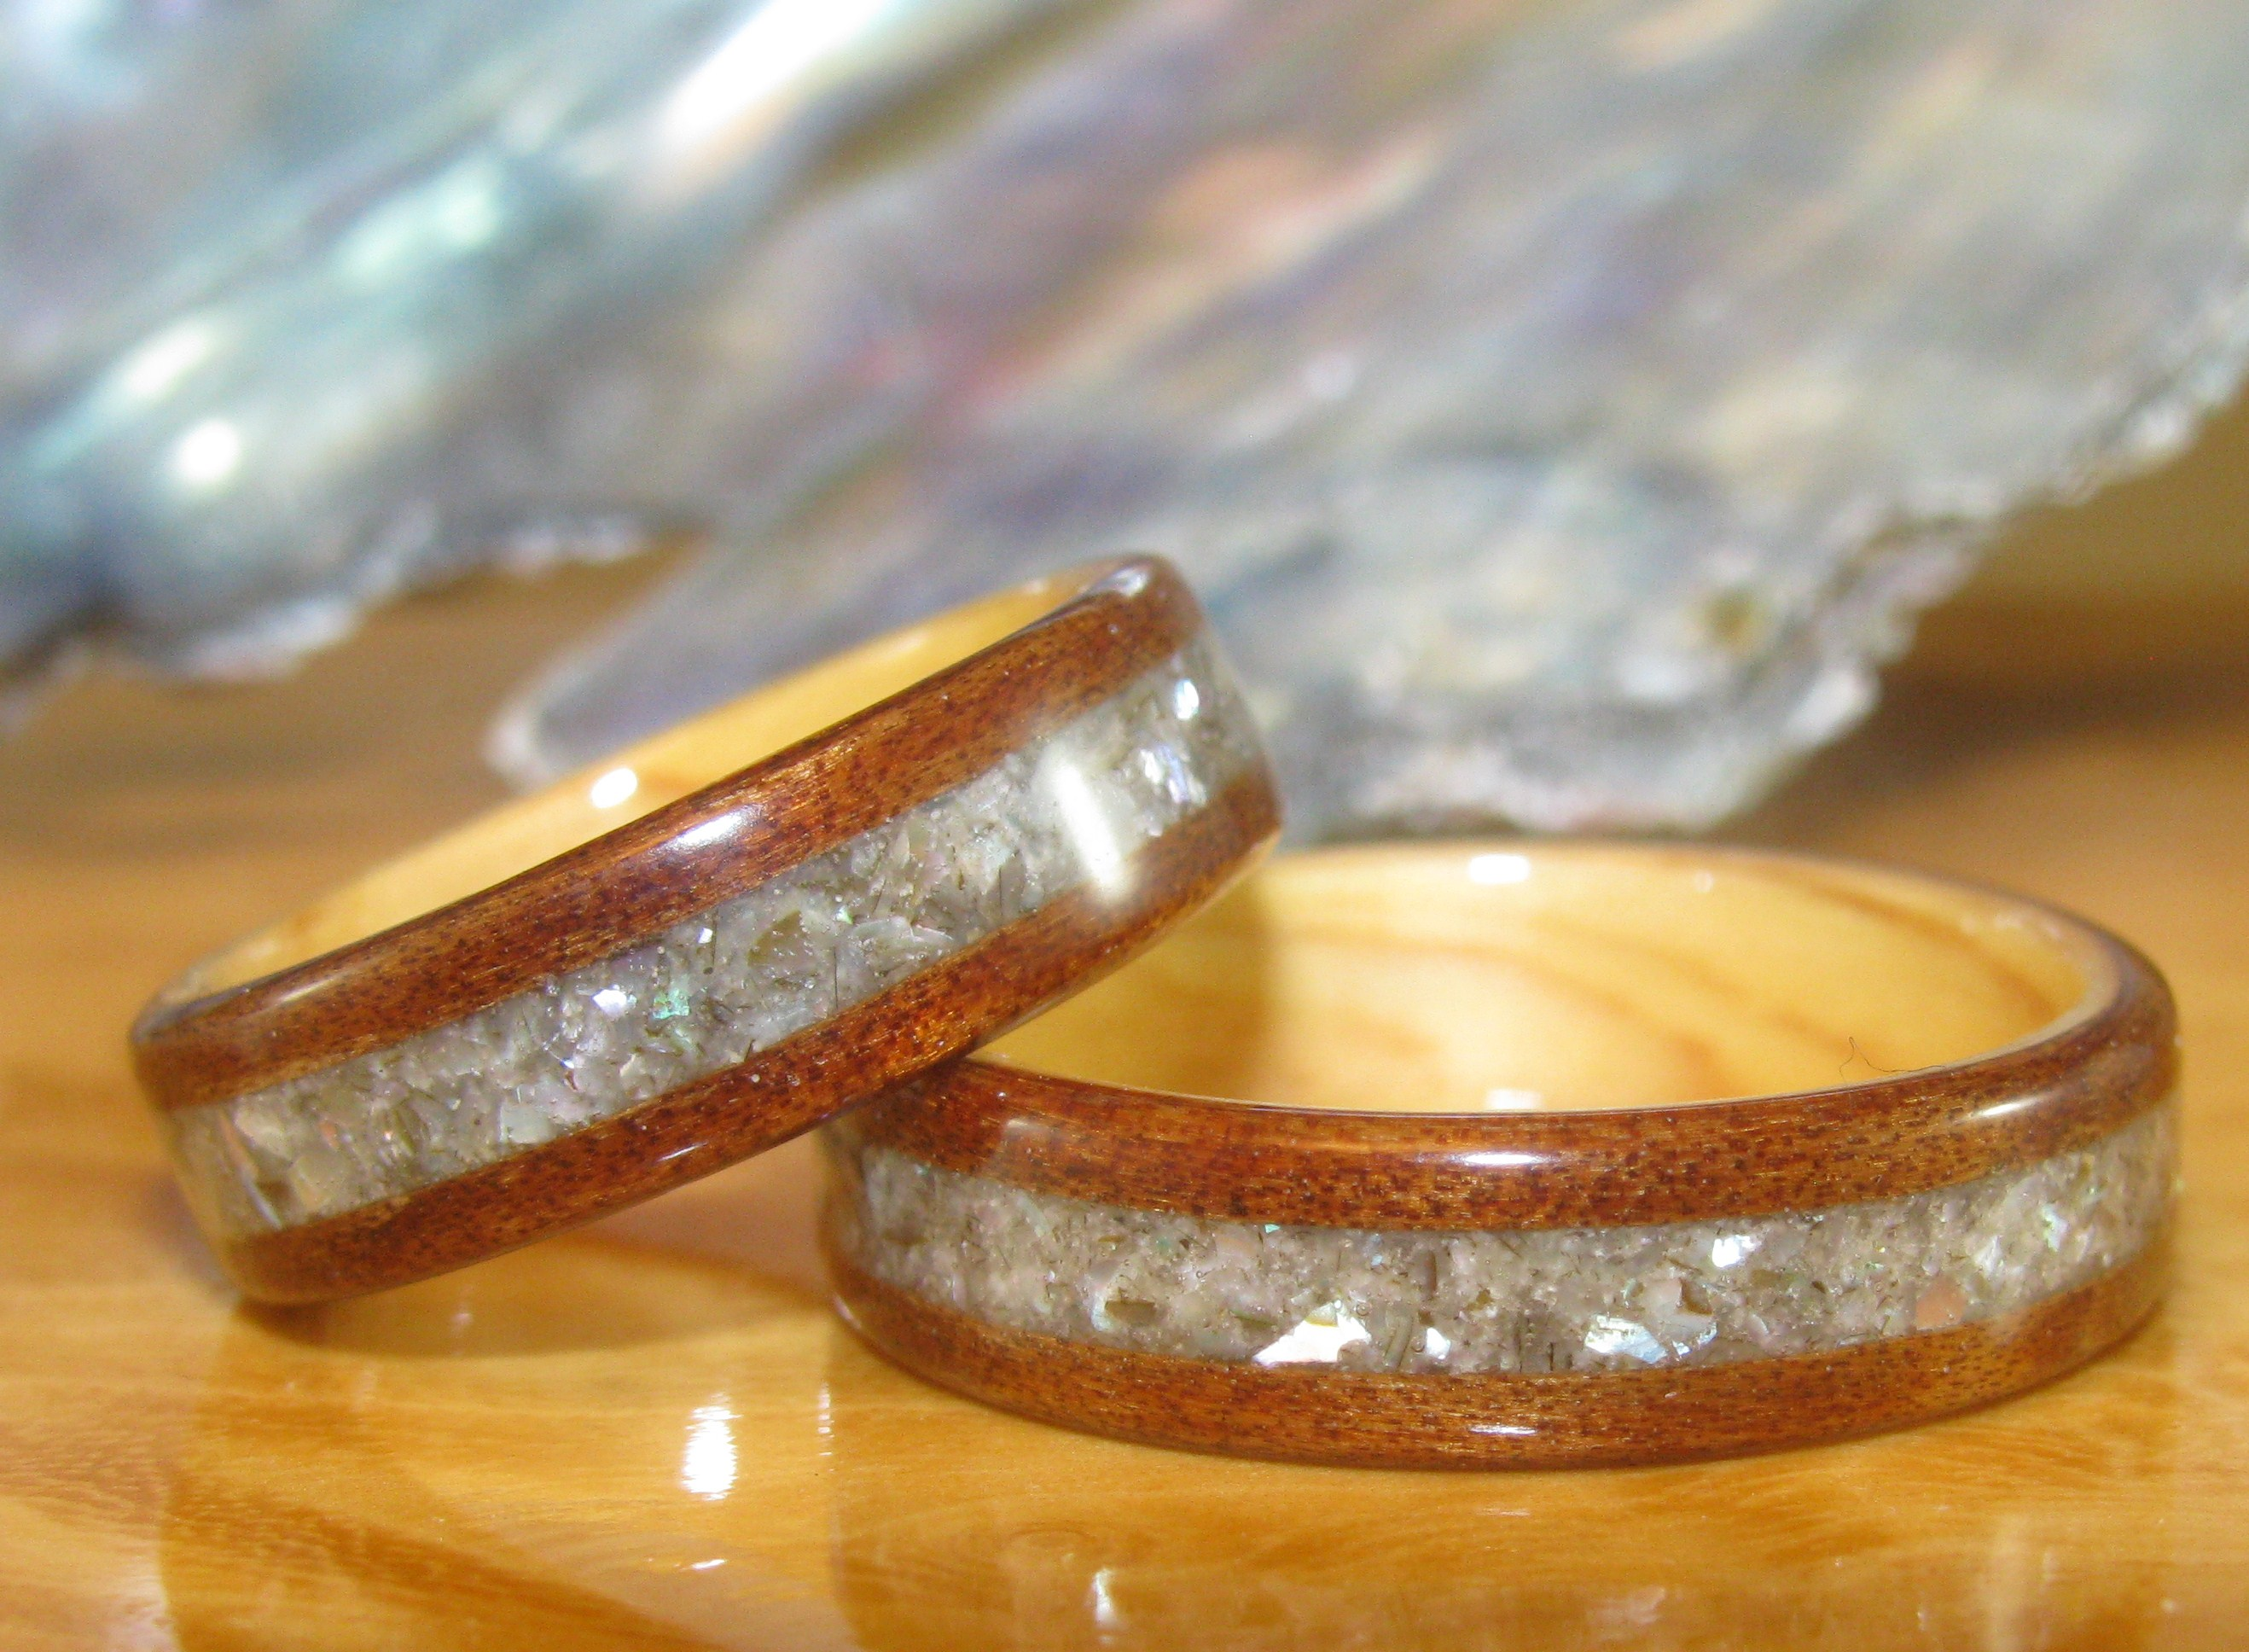 bands yellow with to band rings fingers need engagement pinterest size wedding pin gold and e ring some see abalone